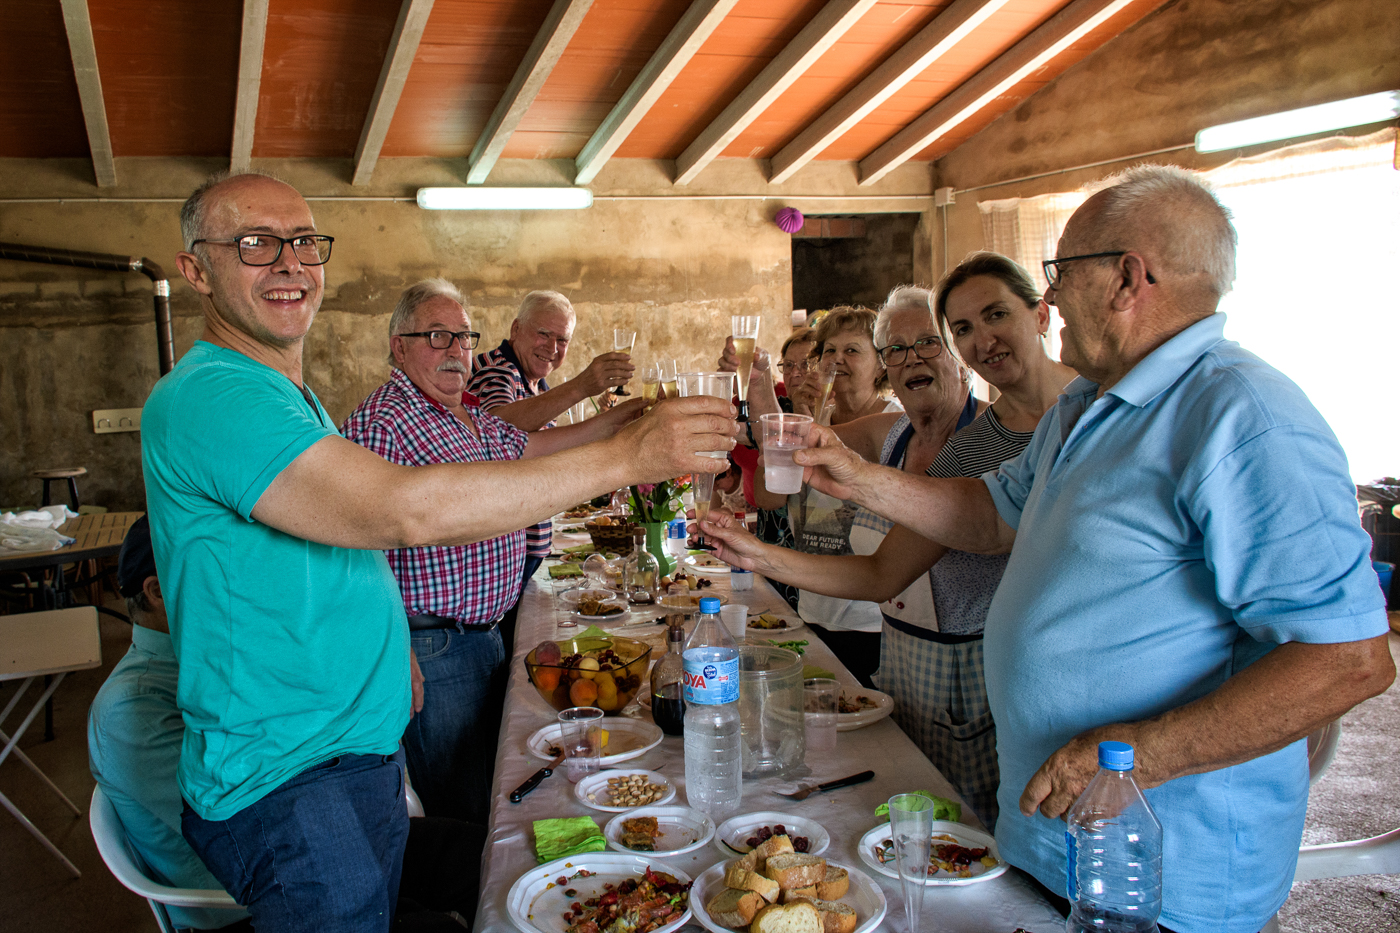 Toasting health and happiness in Spain